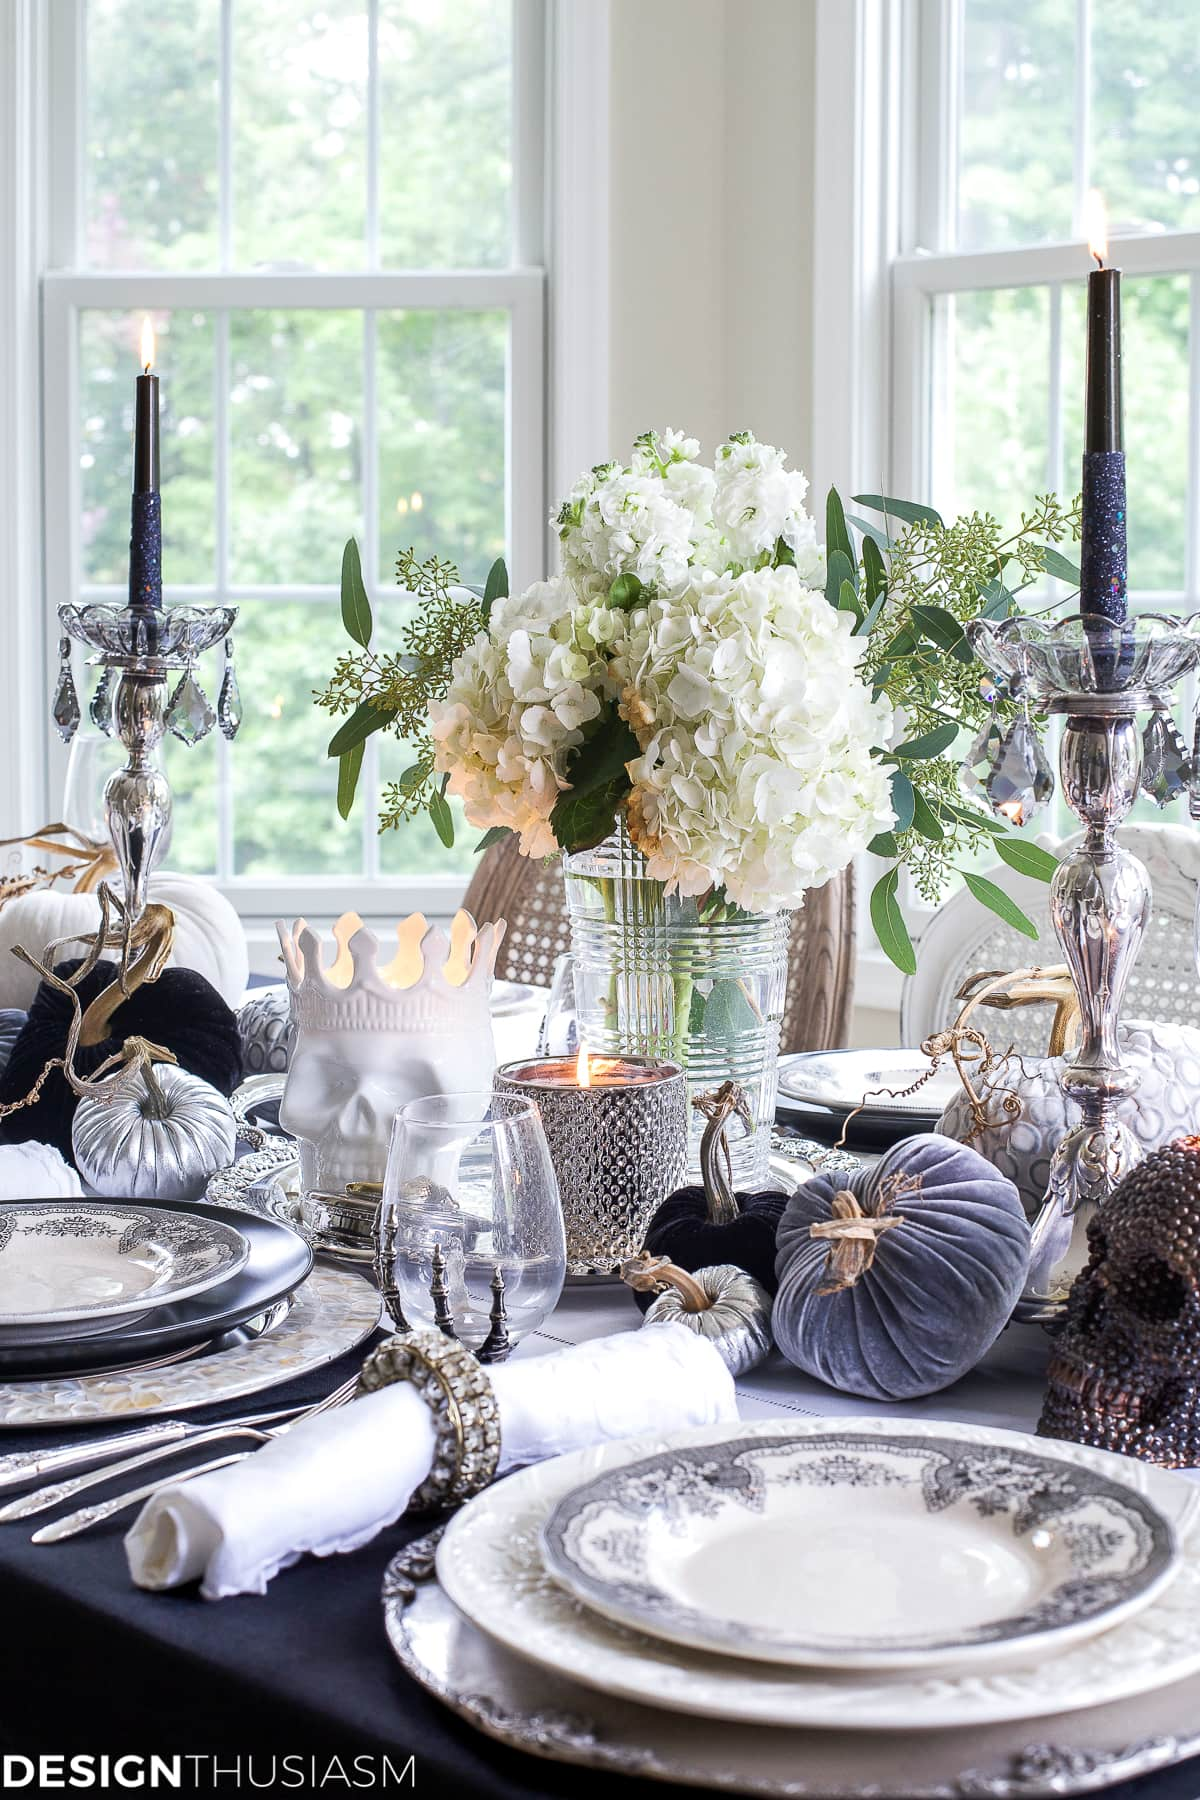 Black and White Table Top Ideas for an Elegant Halloween Dinner